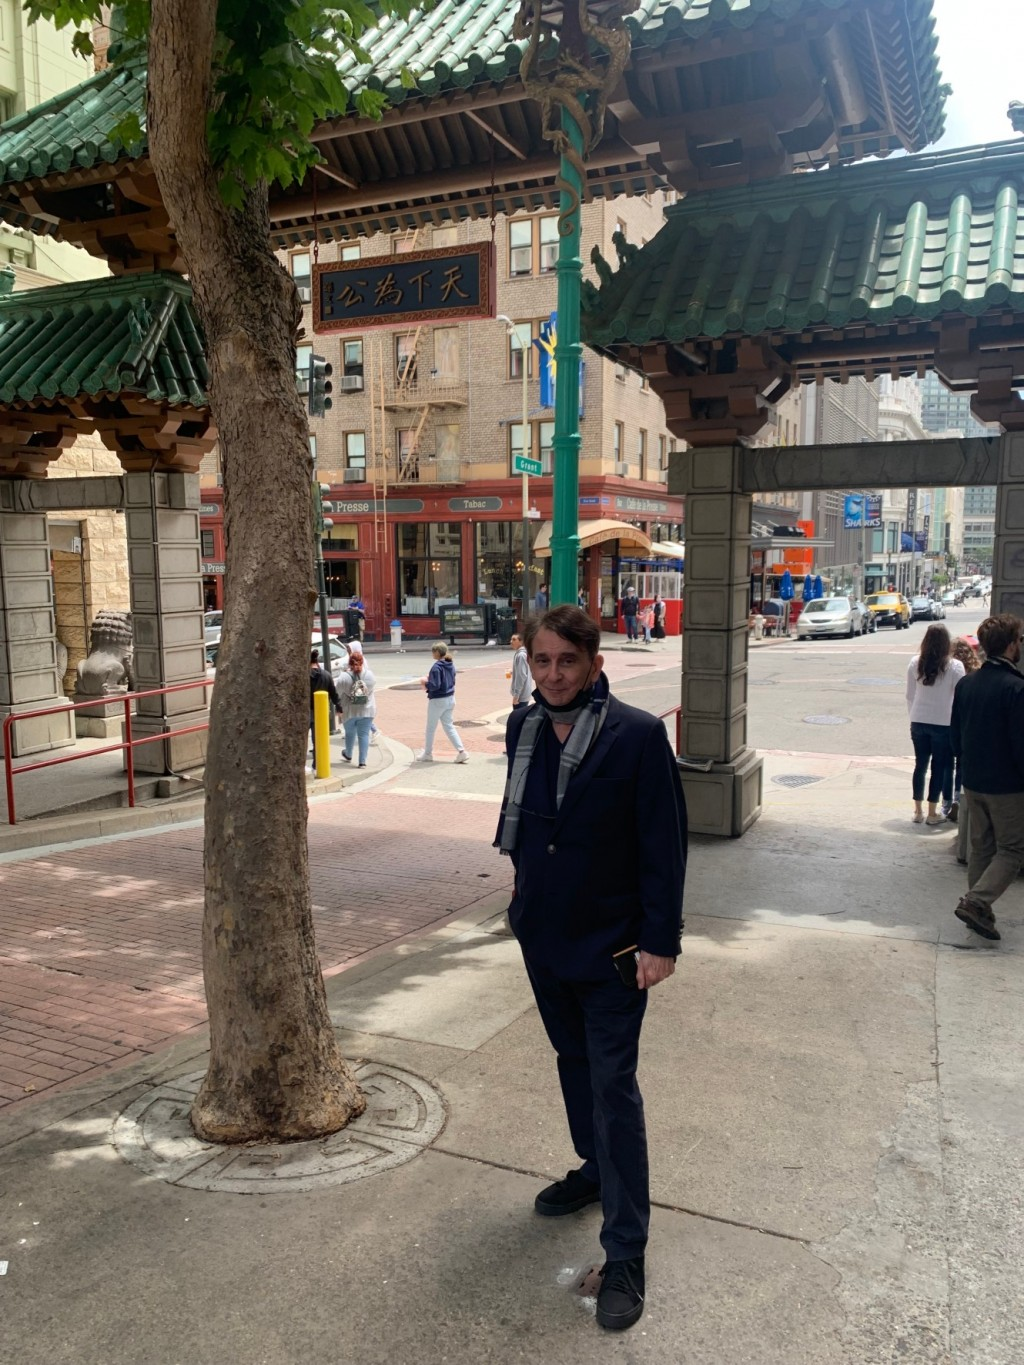 My reflections on visiting San Francisco: Former AIT director